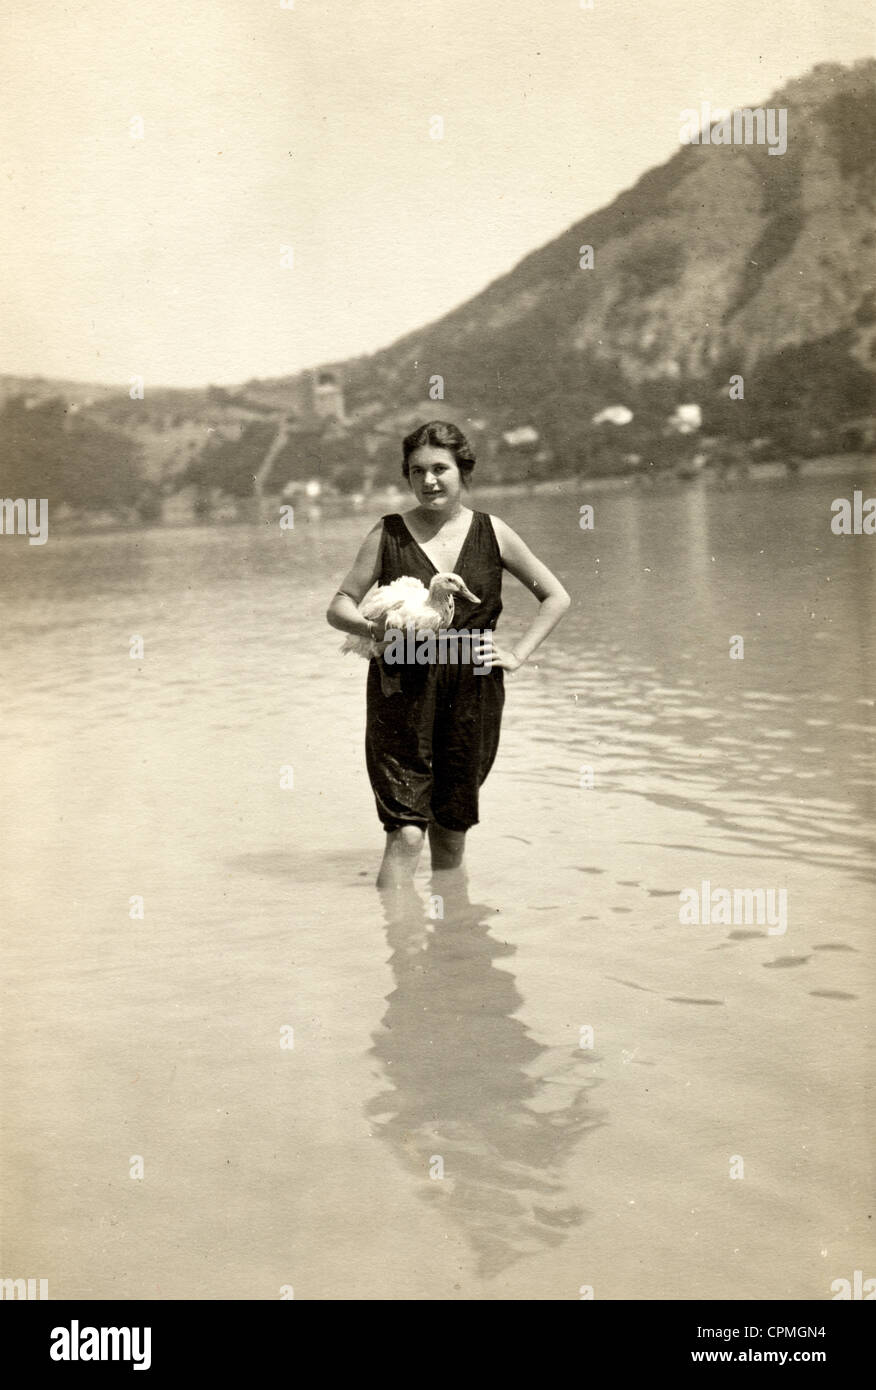 Woman Bather in a Lake Holding Pet Duck - Stock Image